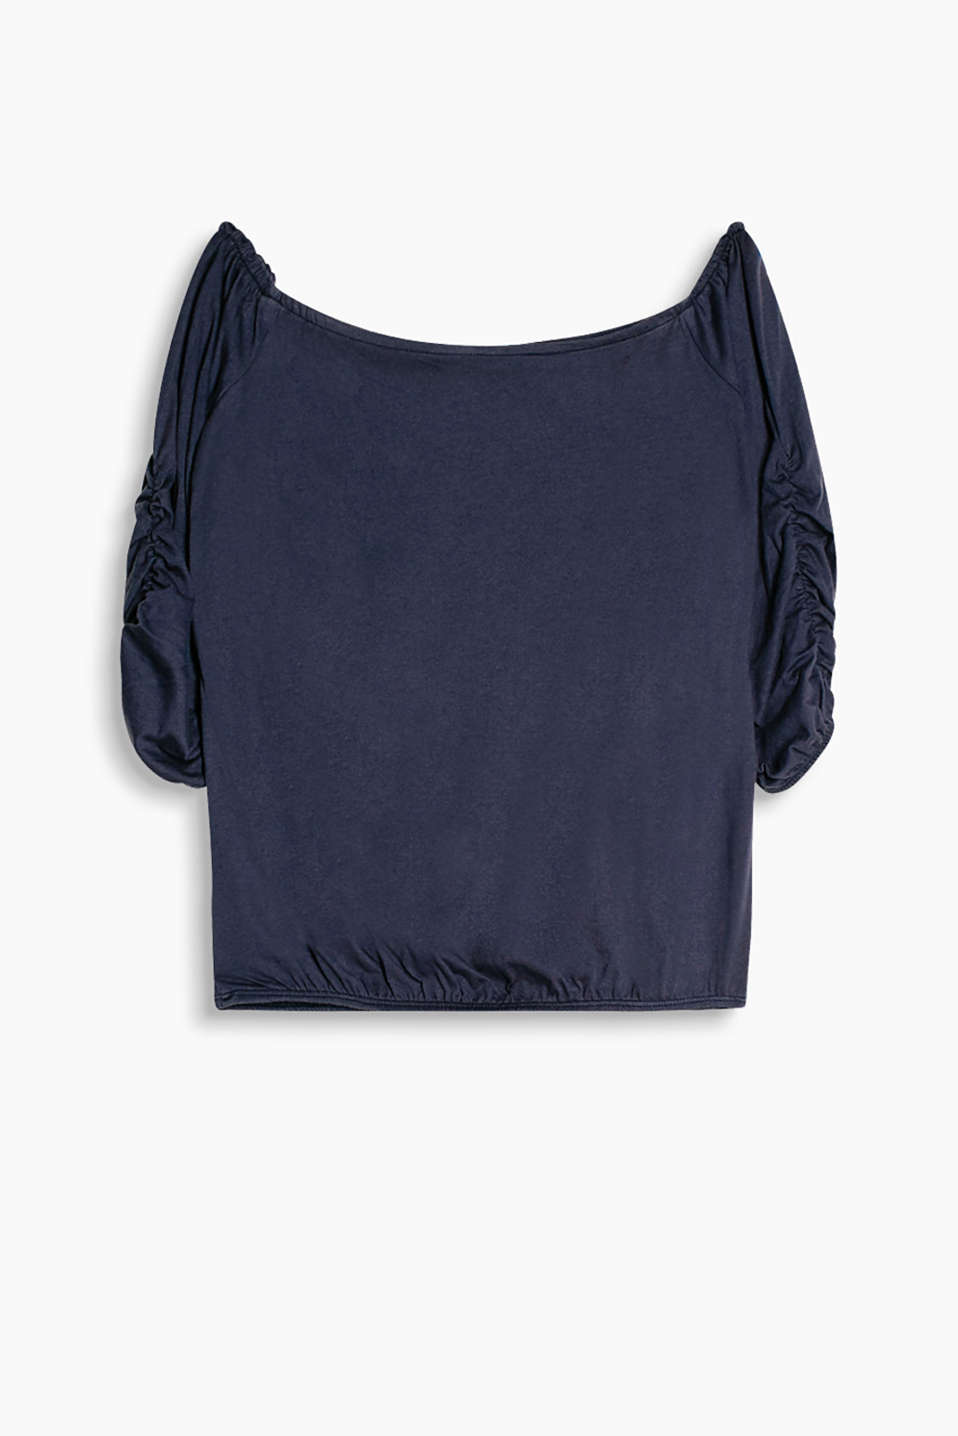 T-shirt with gathered sleeves and an elasticated waistband, made of soft jersey